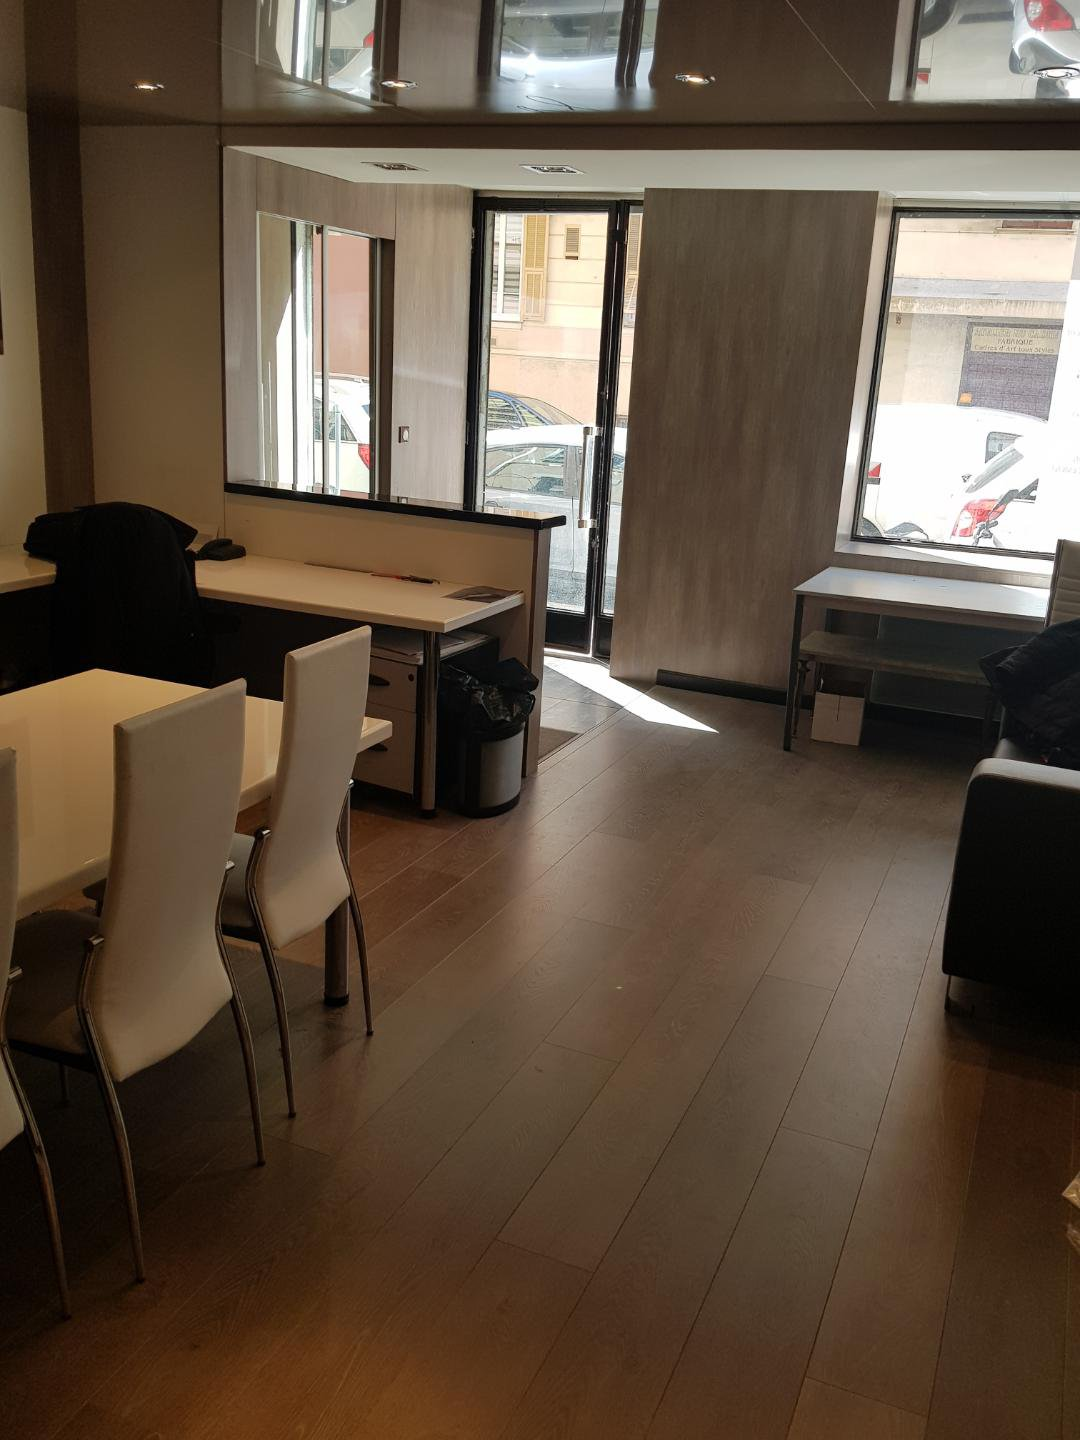 Affitto Locale commerciale - Nizza (Nice)